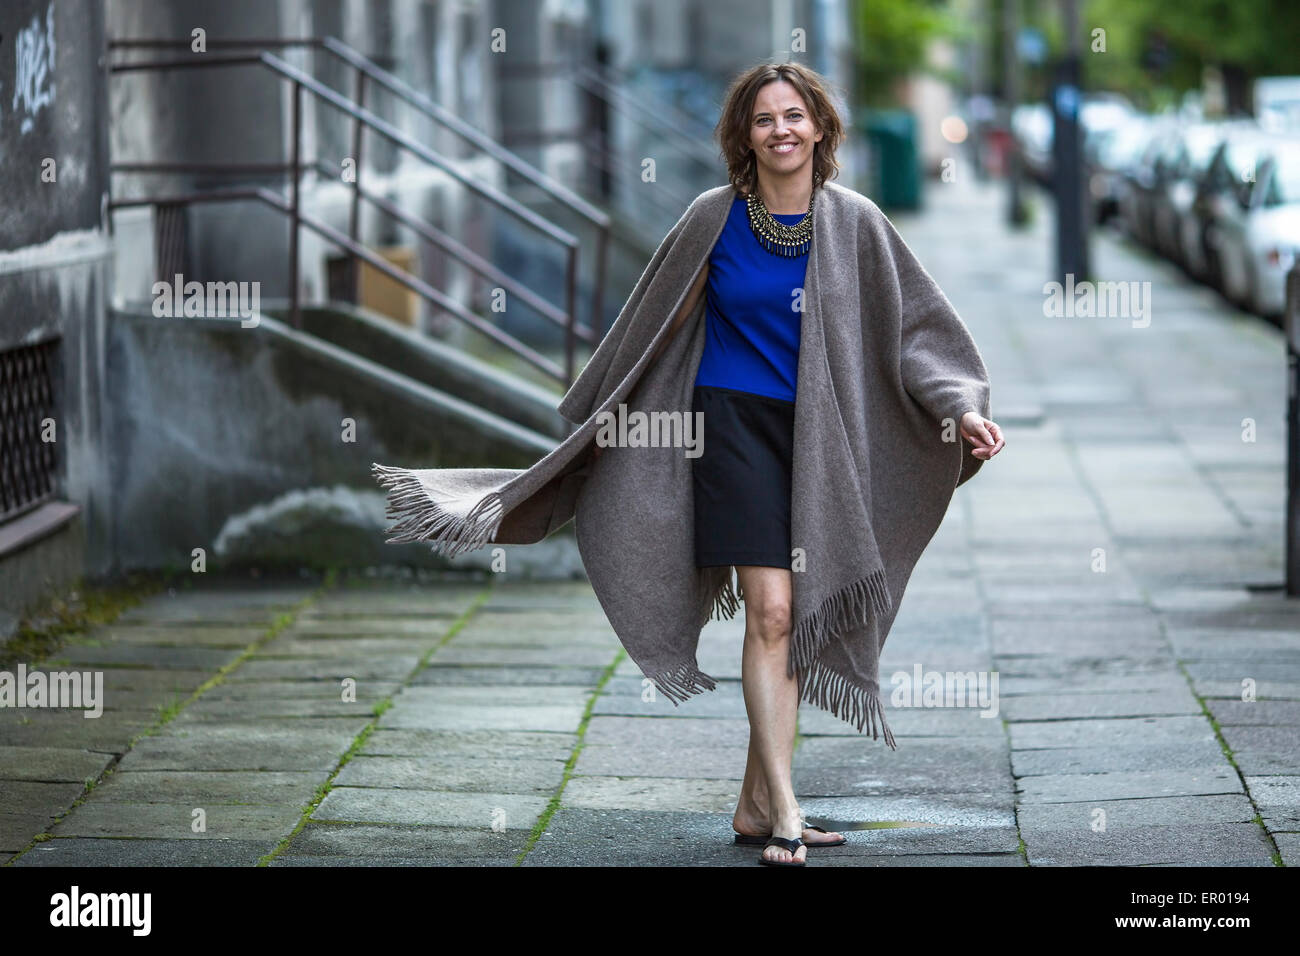 Young positive woman in a poncho walking in the street. - Stock Image